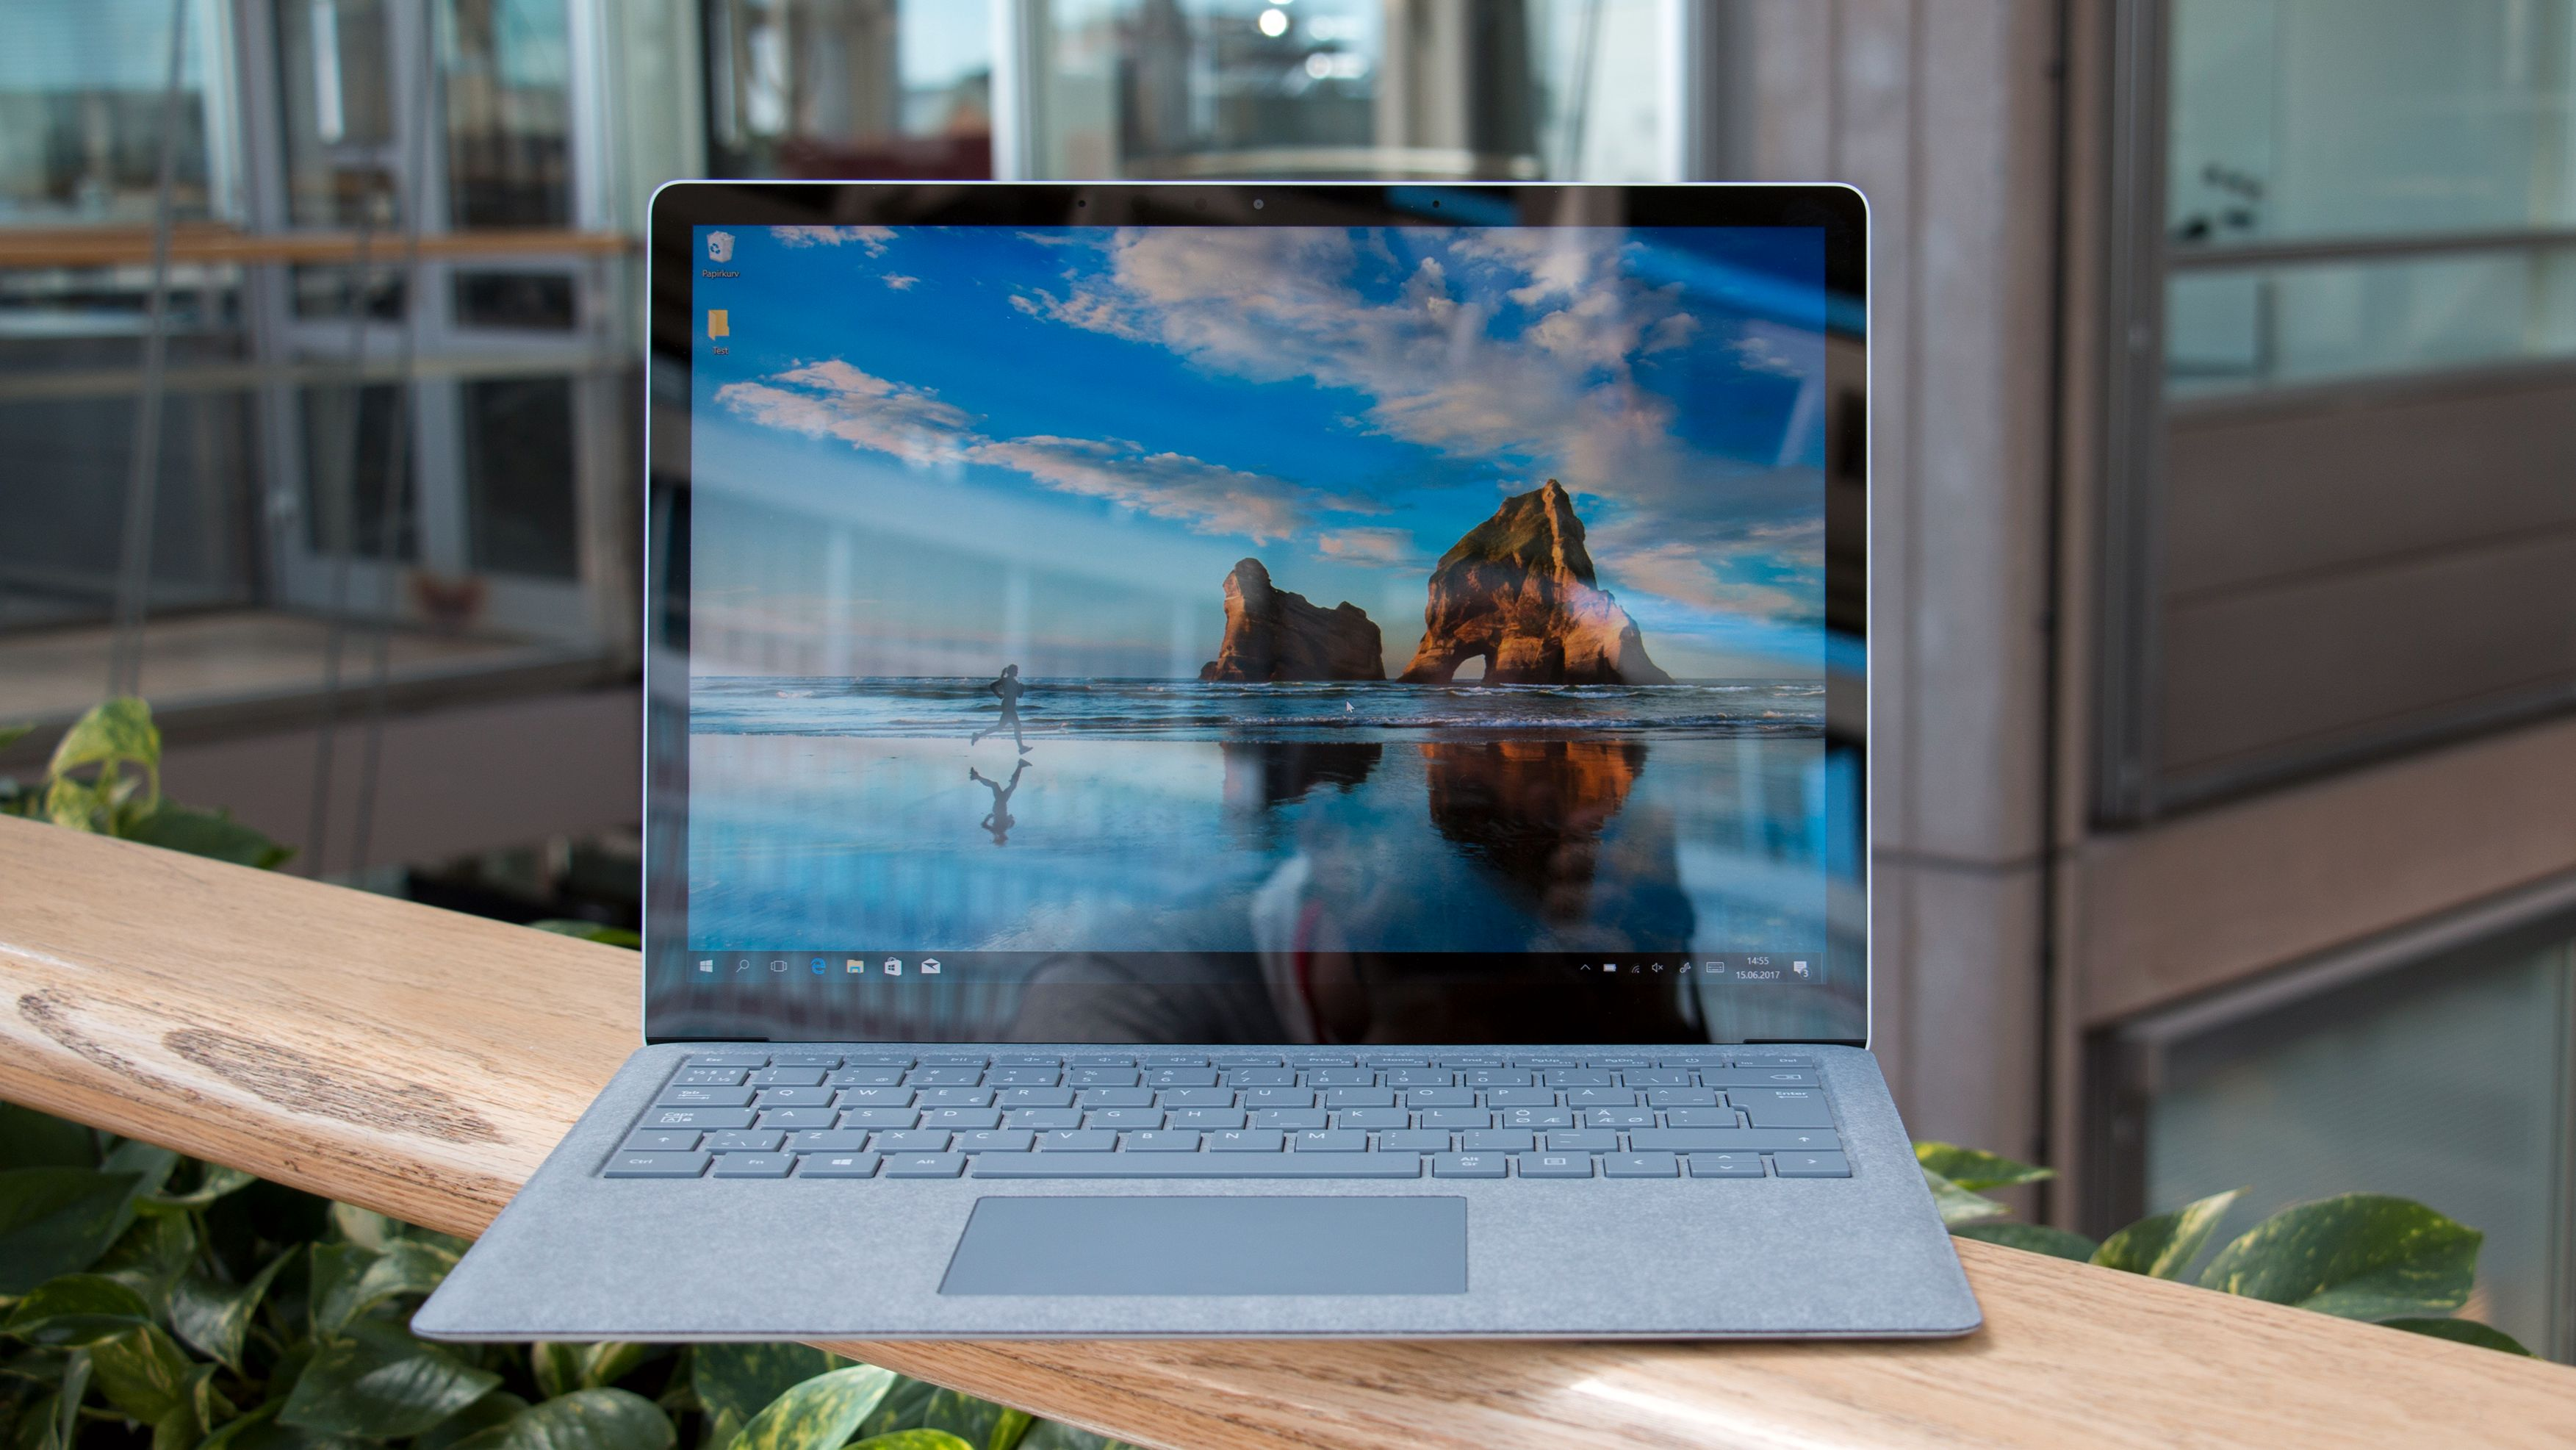 Microsoft Surface Pro 7 review: Still the best Windows